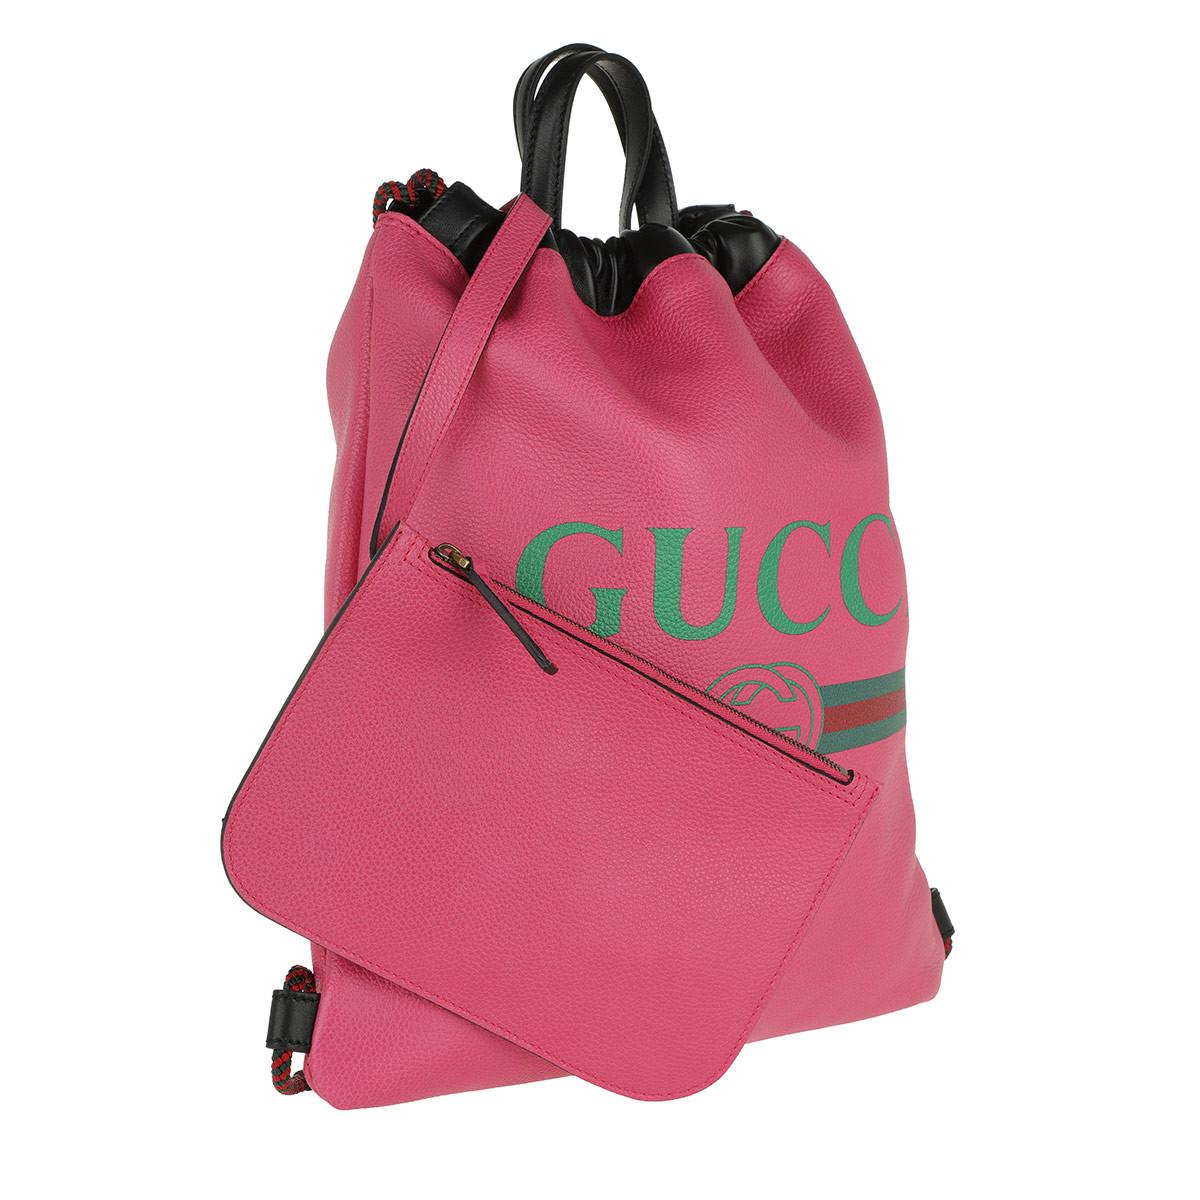 f39015aedc1e Gucci Print Small Drawstring Backpack Pink in Pink - Save 18% - Lyst